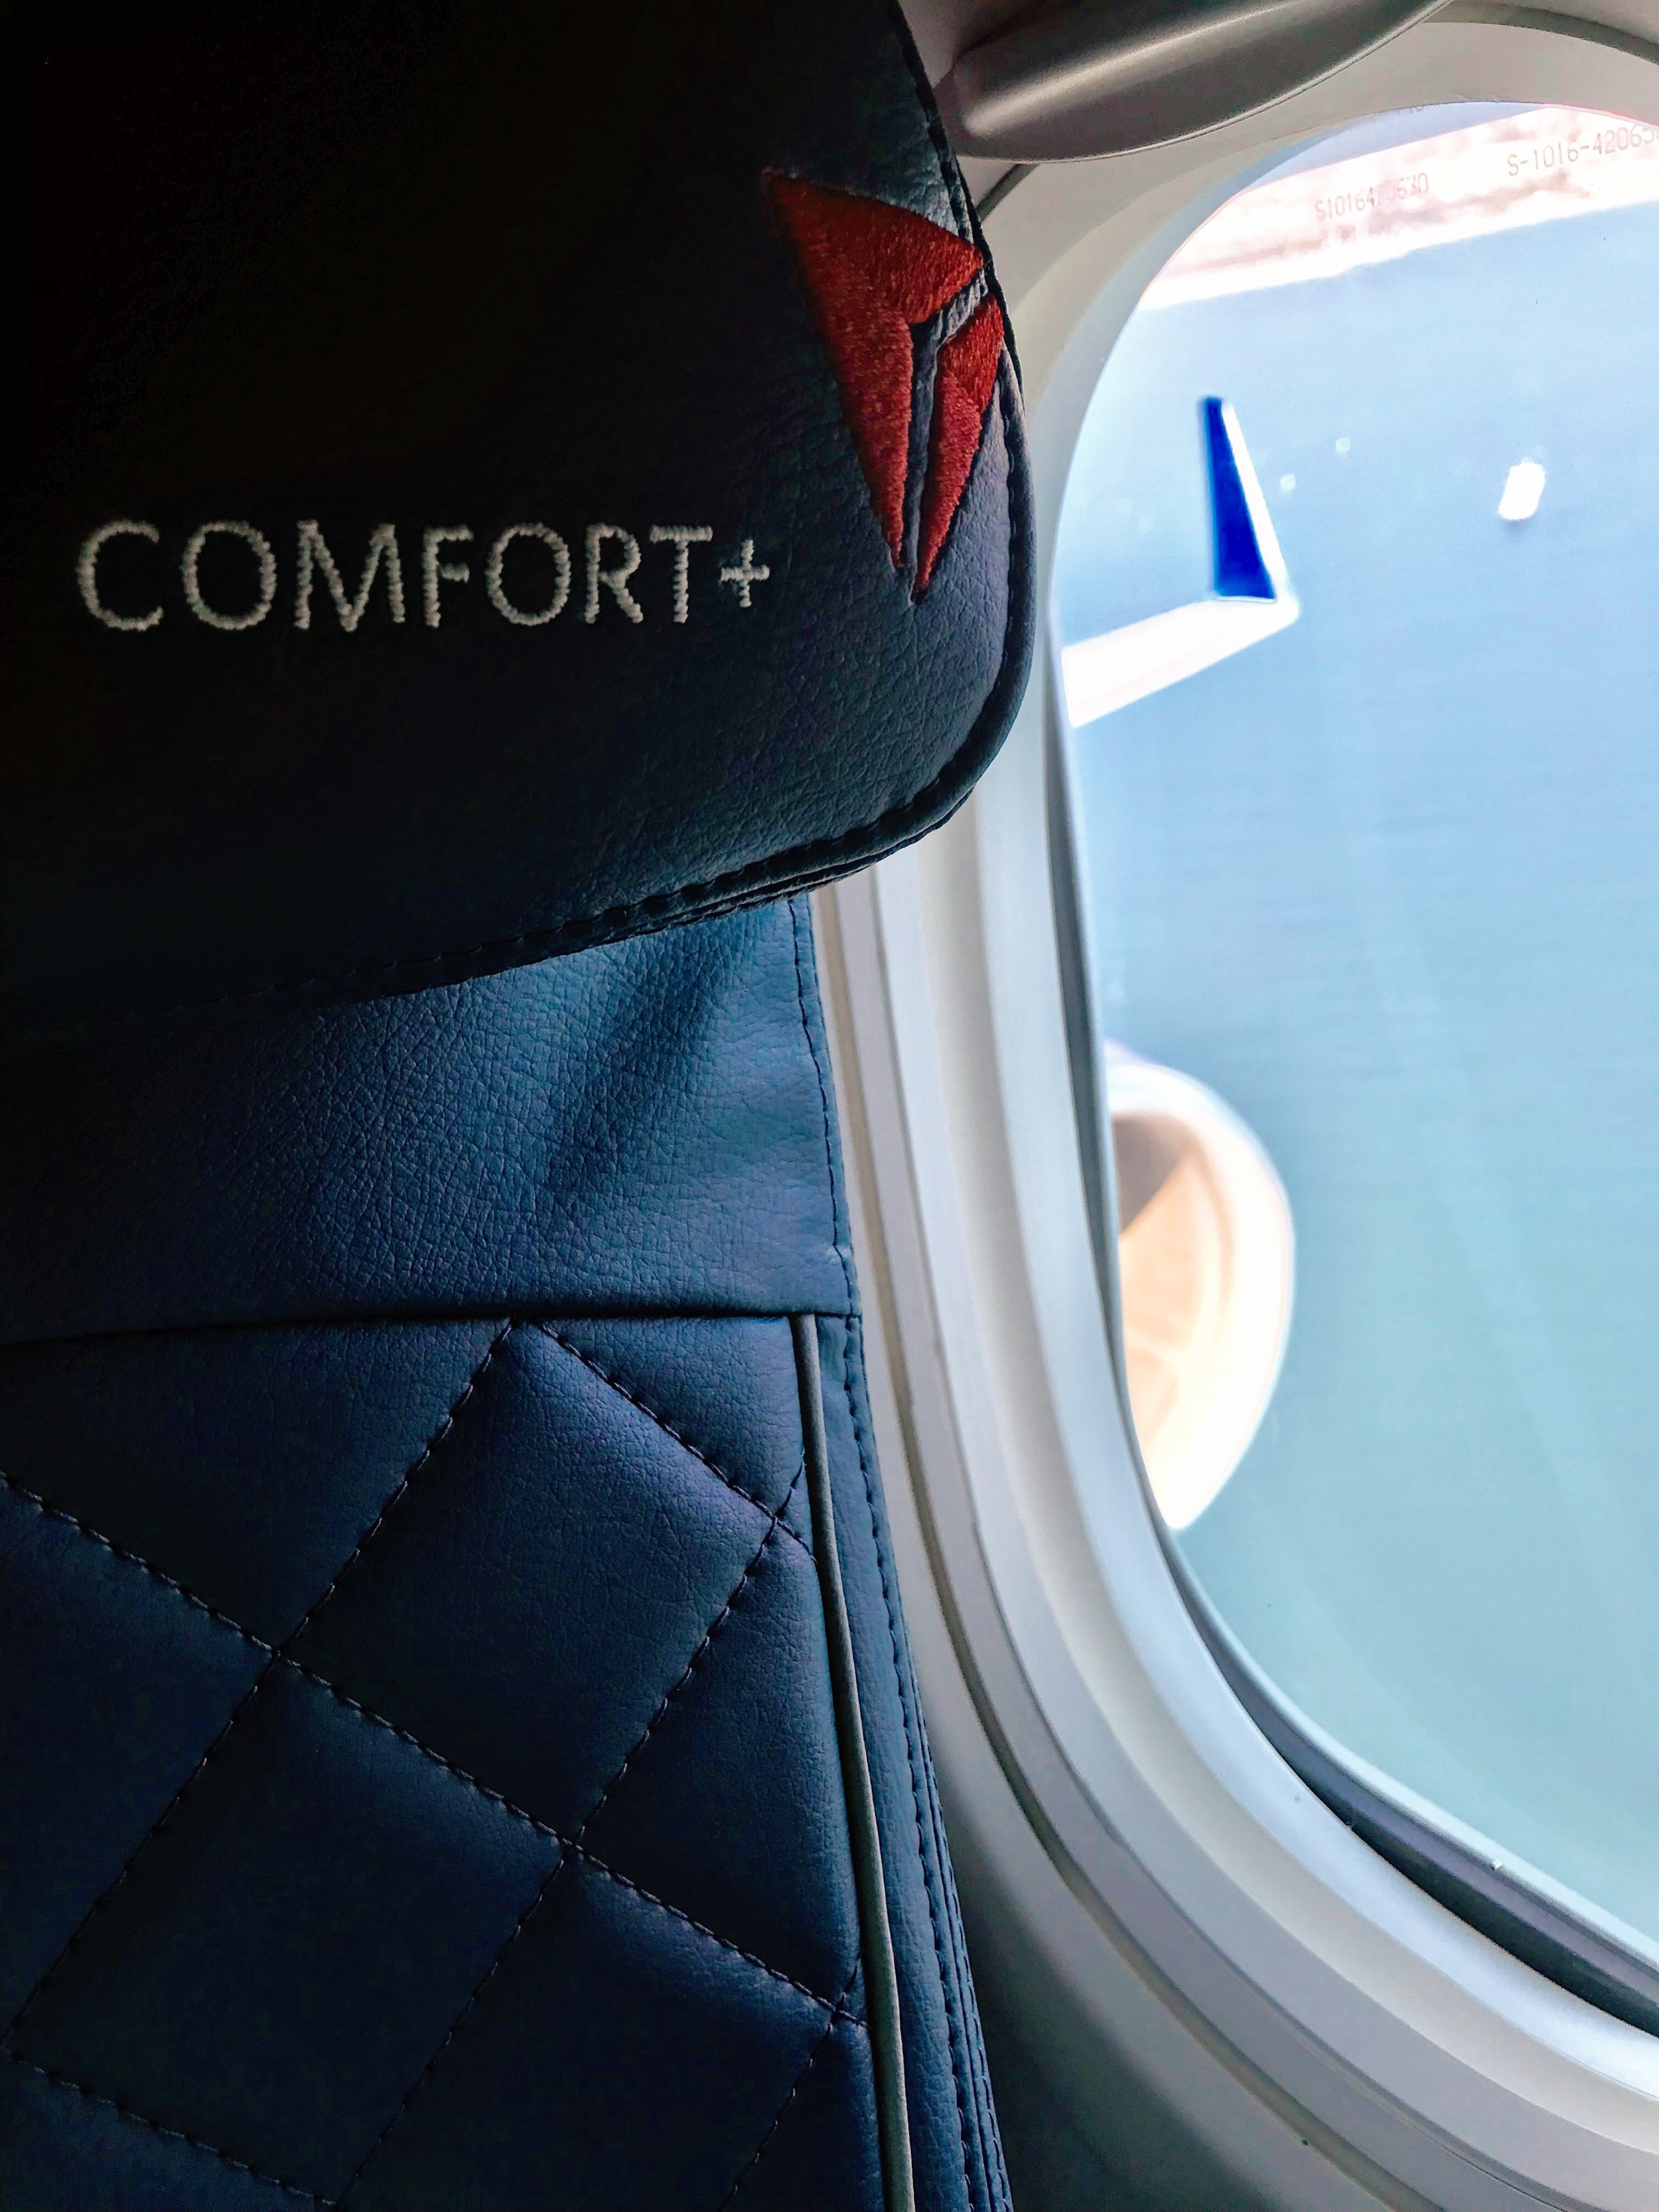 Comfort+ seats on the 75D feature adjustable headrests.